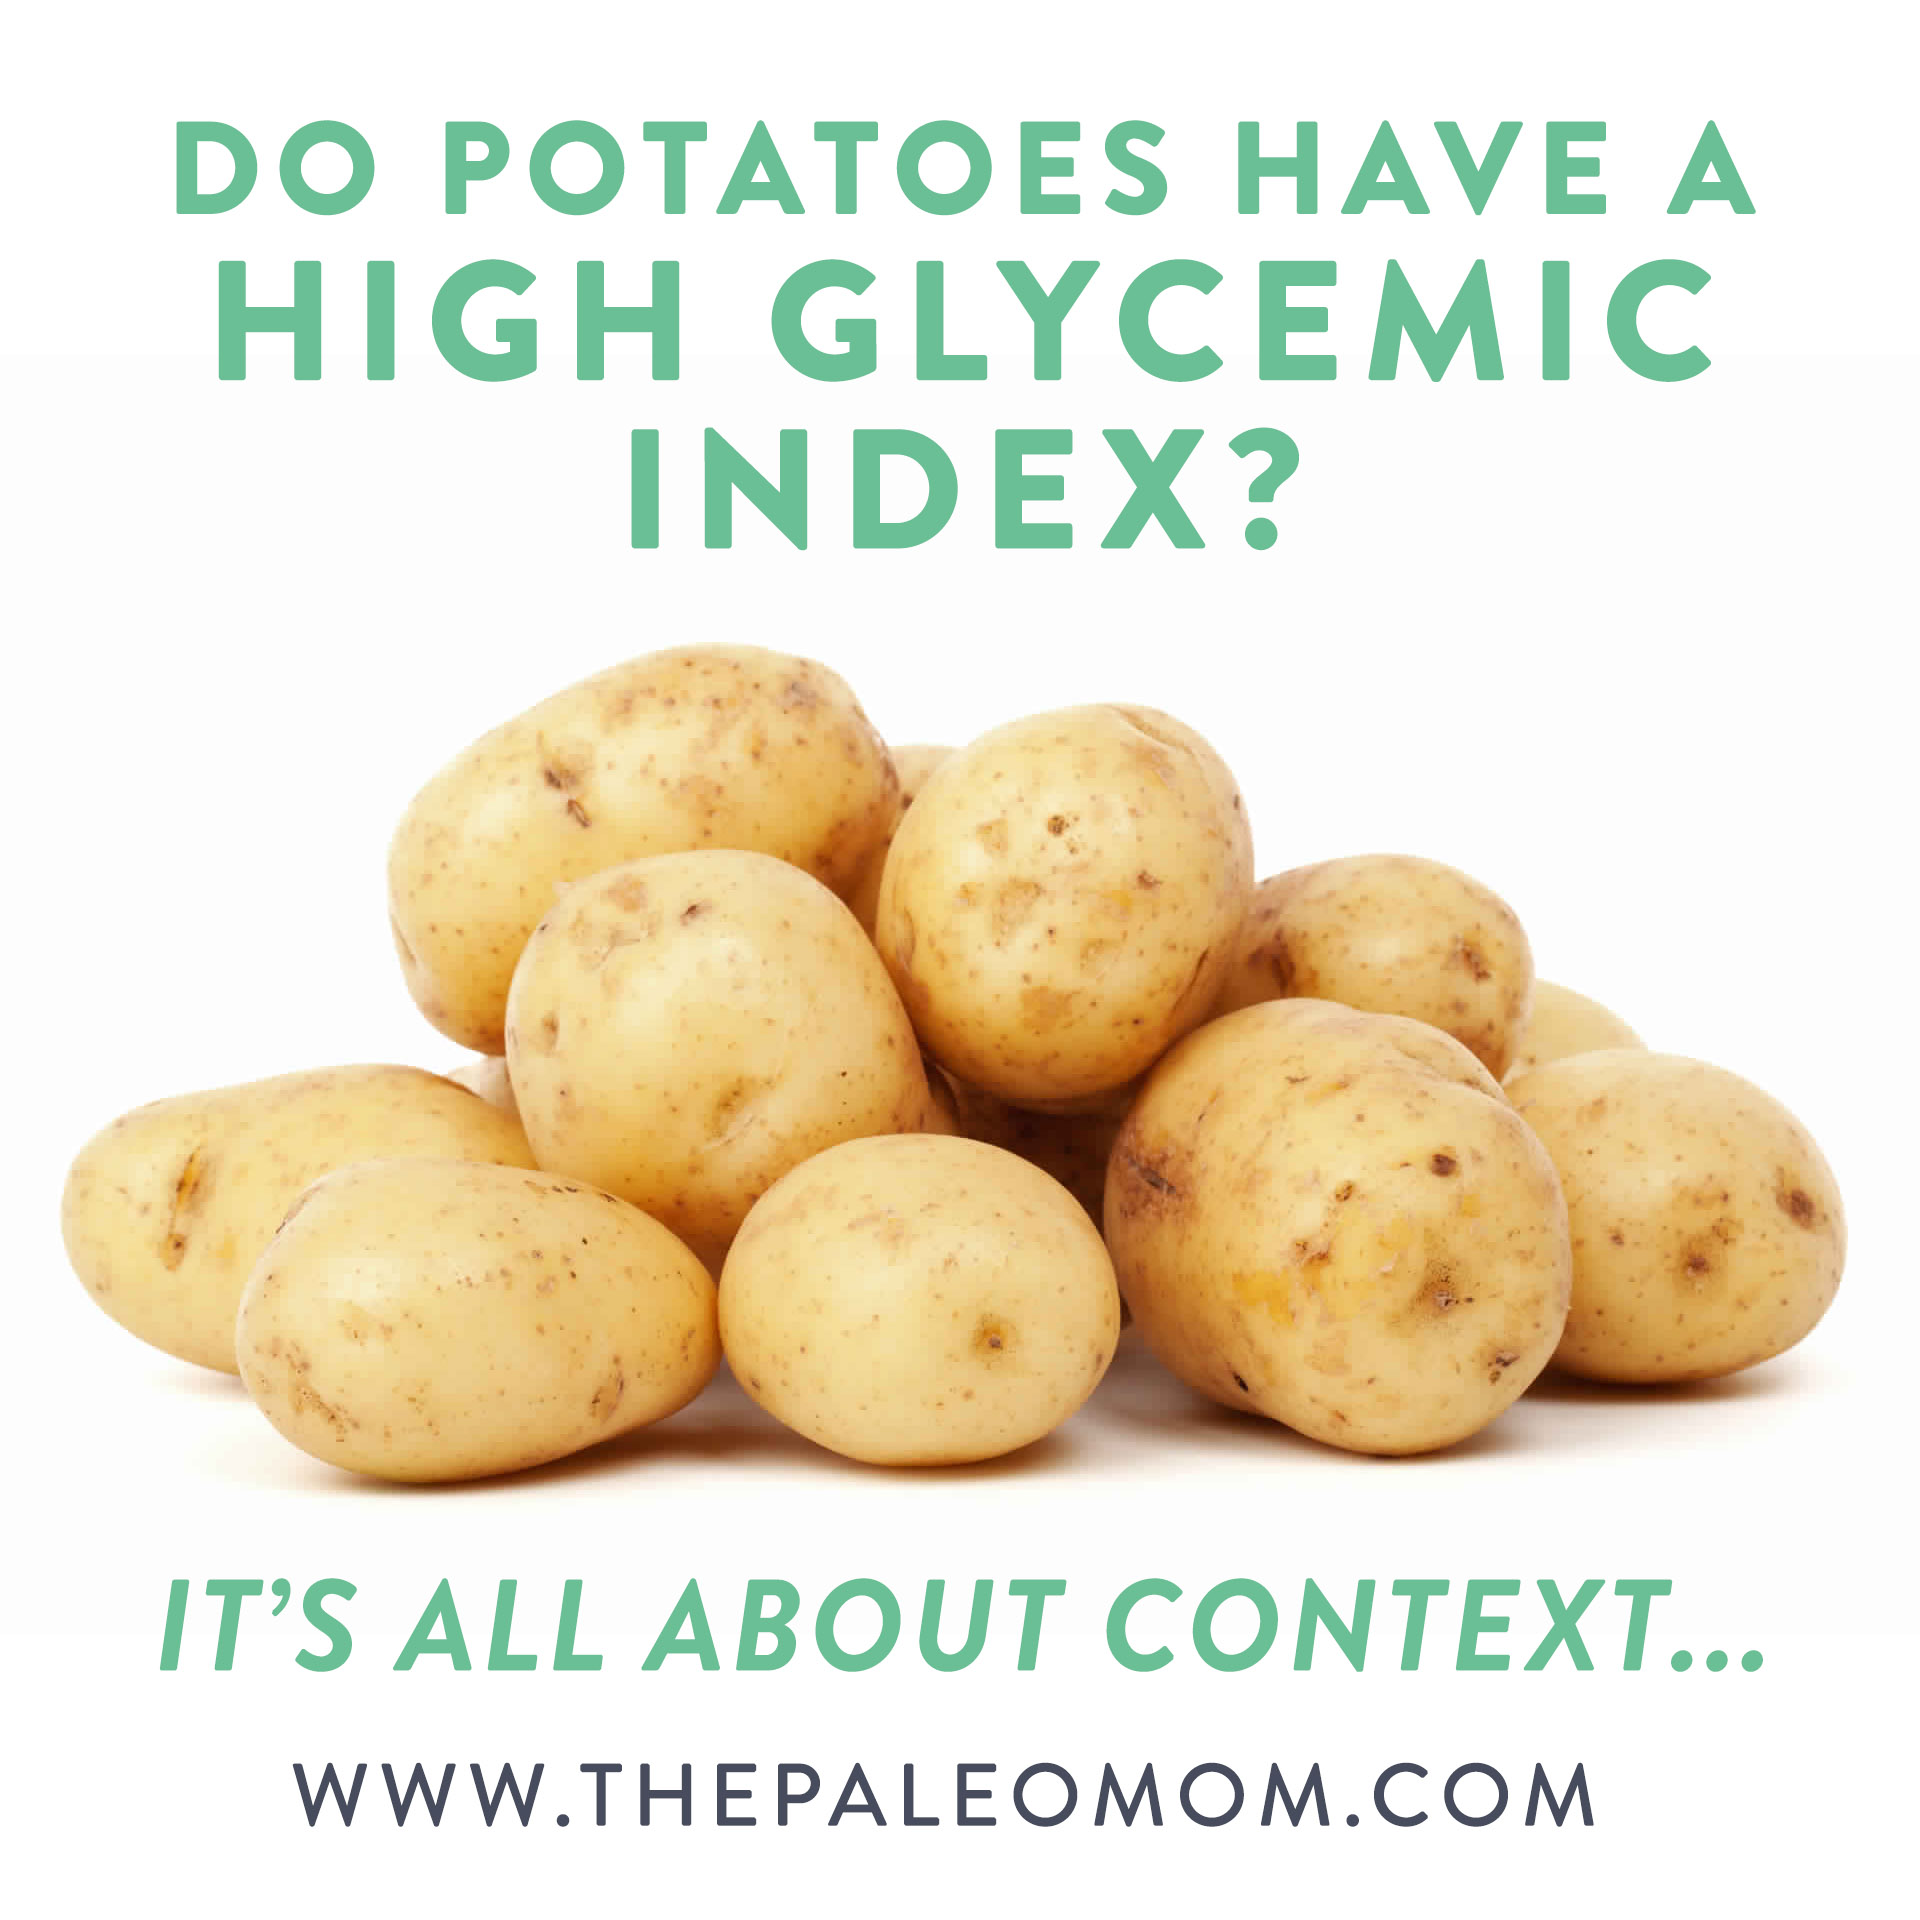 the-Paleo-mom-potatoes-friend-or-foe-of-Paleo-glycemic-index